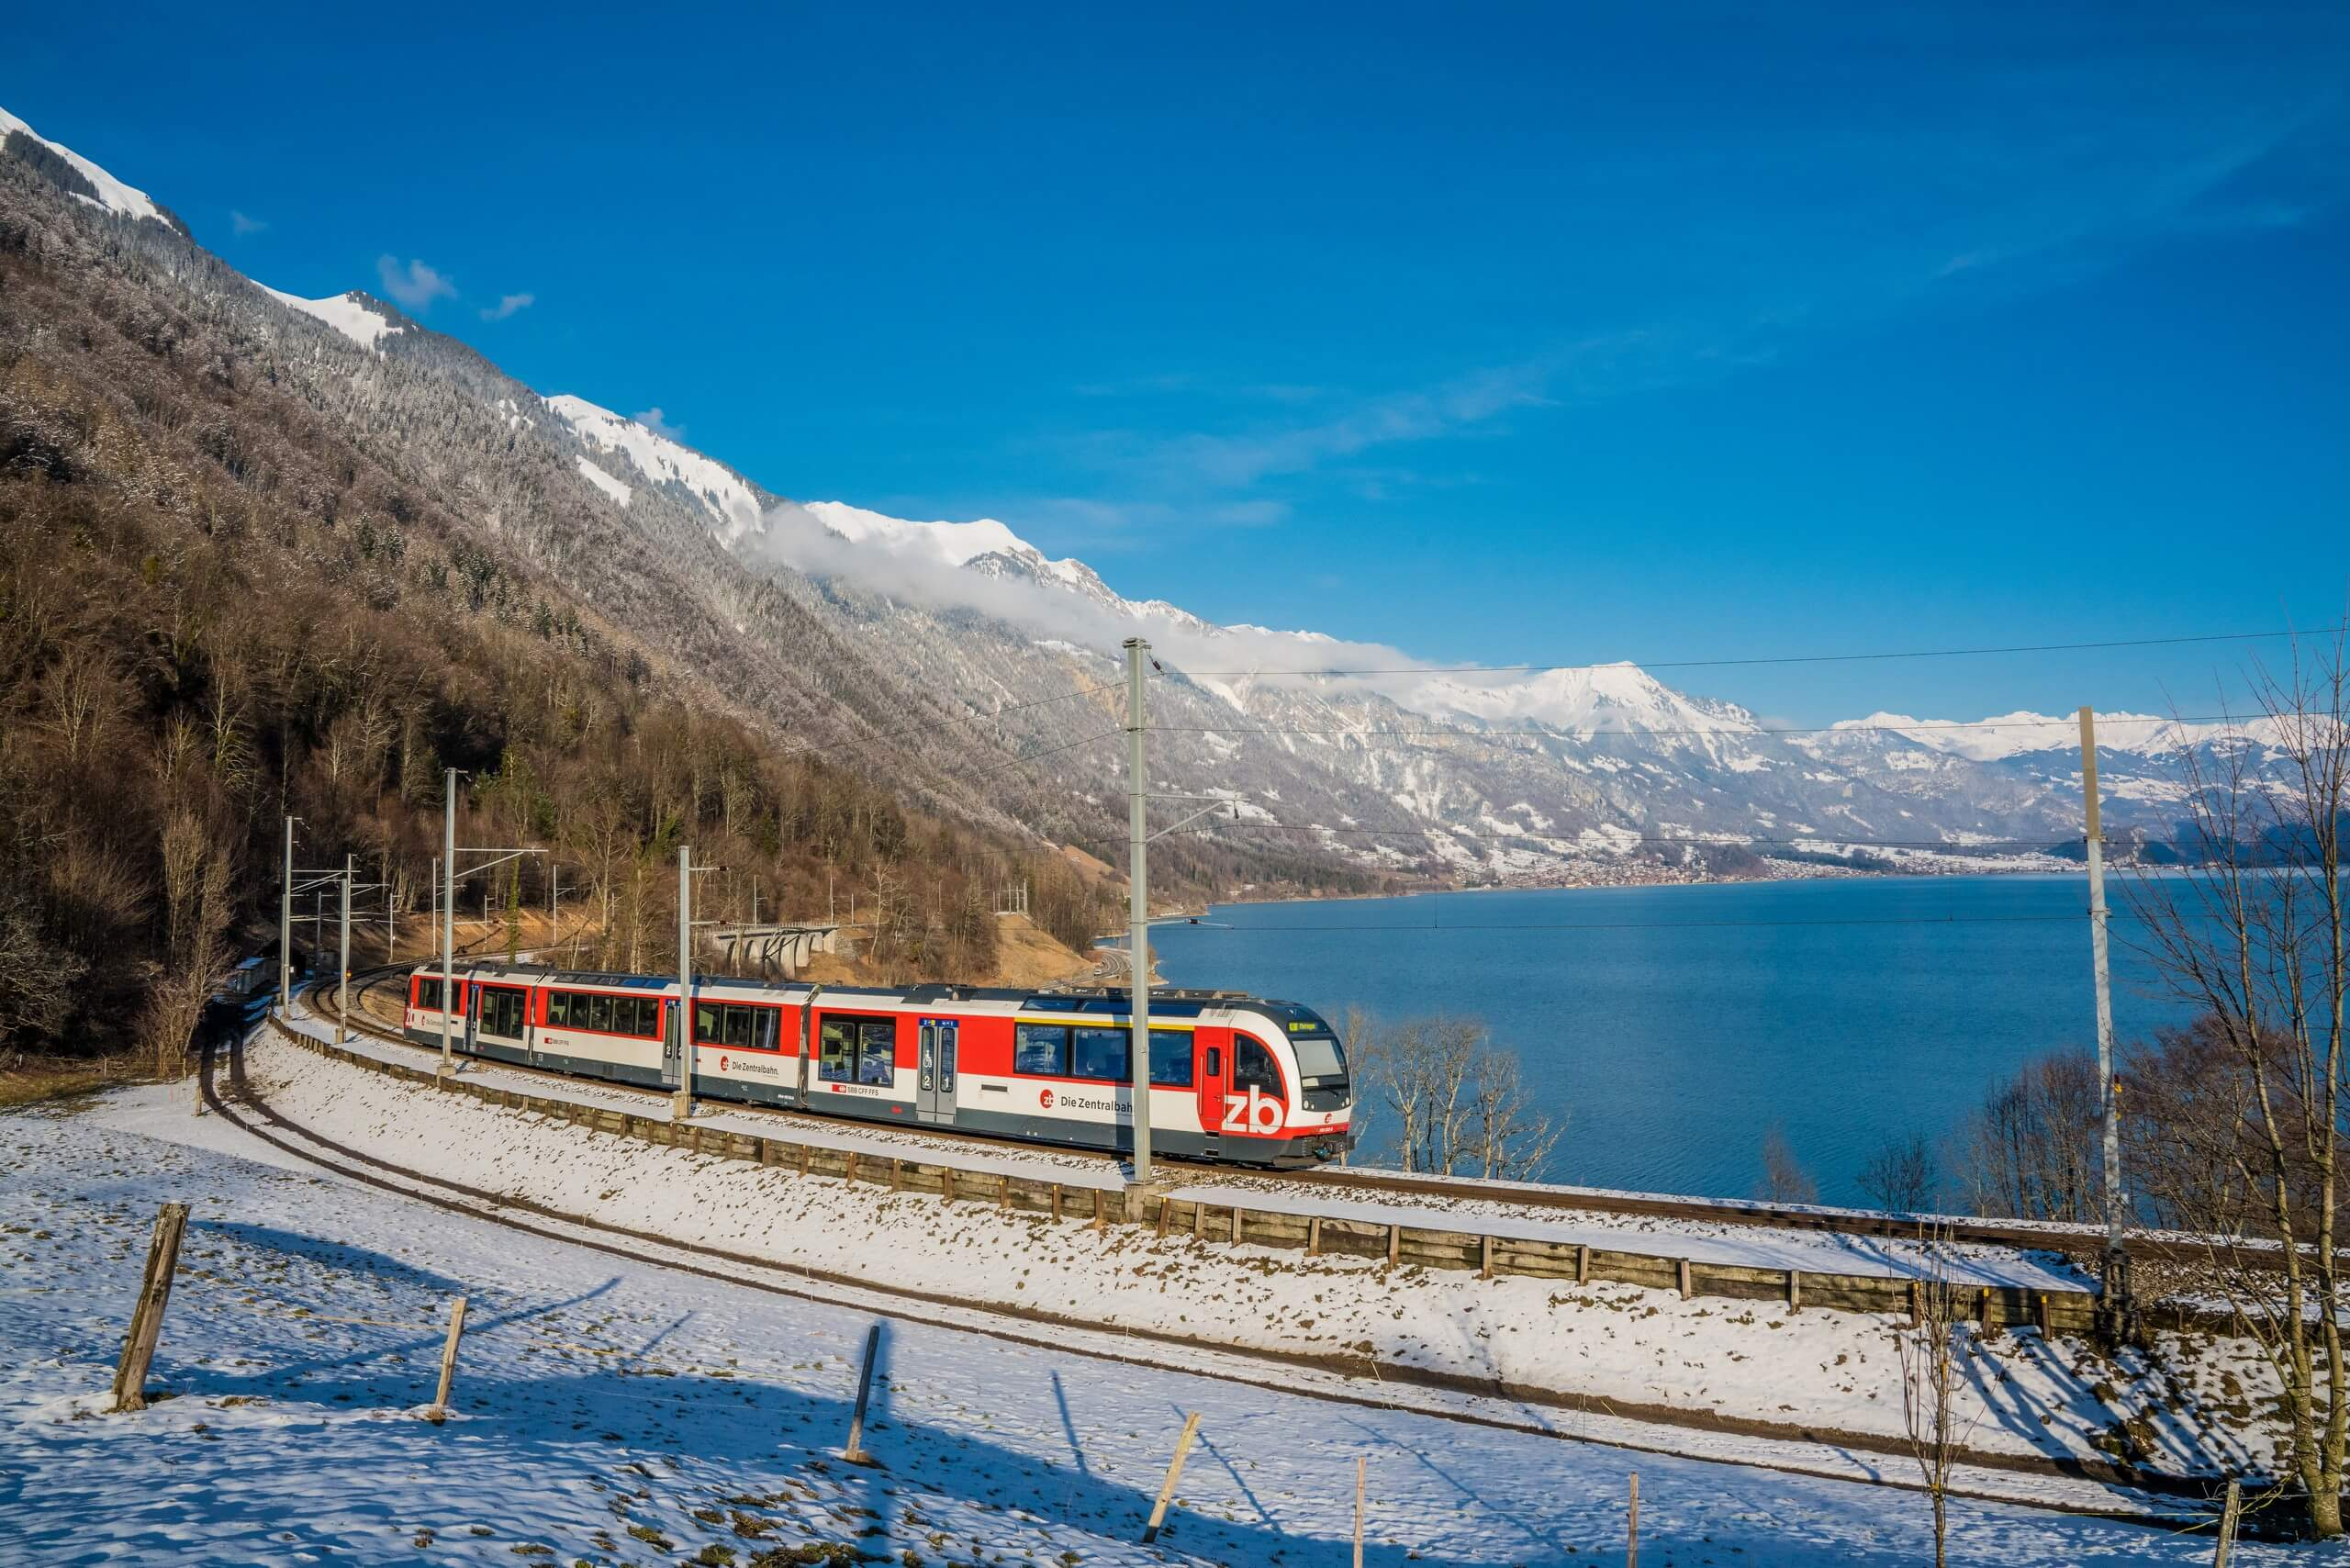 zentralbahn-luzern-interlaken-express-brienzersee-winter